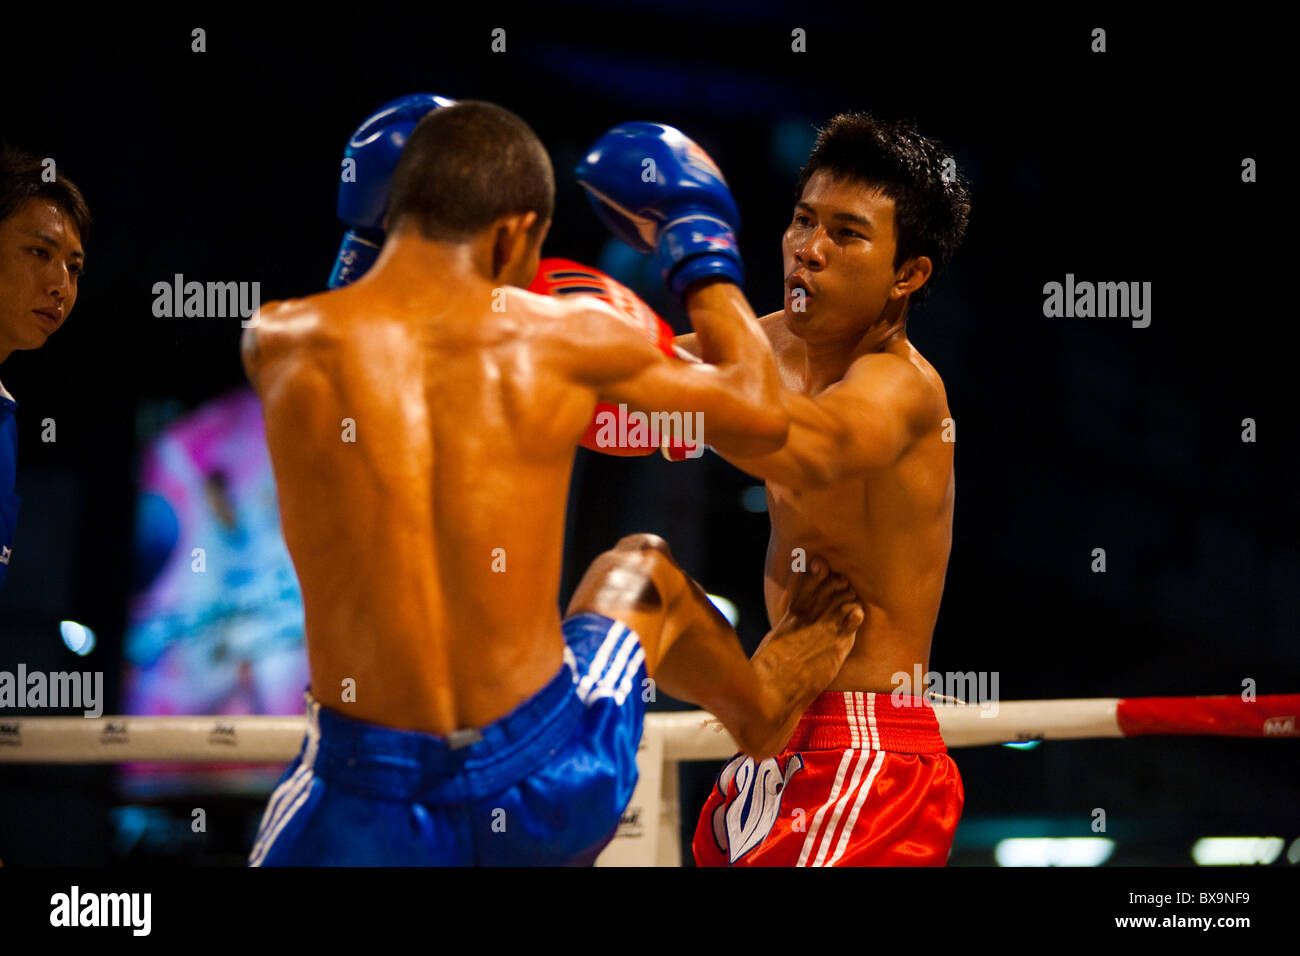 Asian muay thai fighter receiving kick jab to stomach, ribs at amateur outdoor kickboxing event - Stock Image